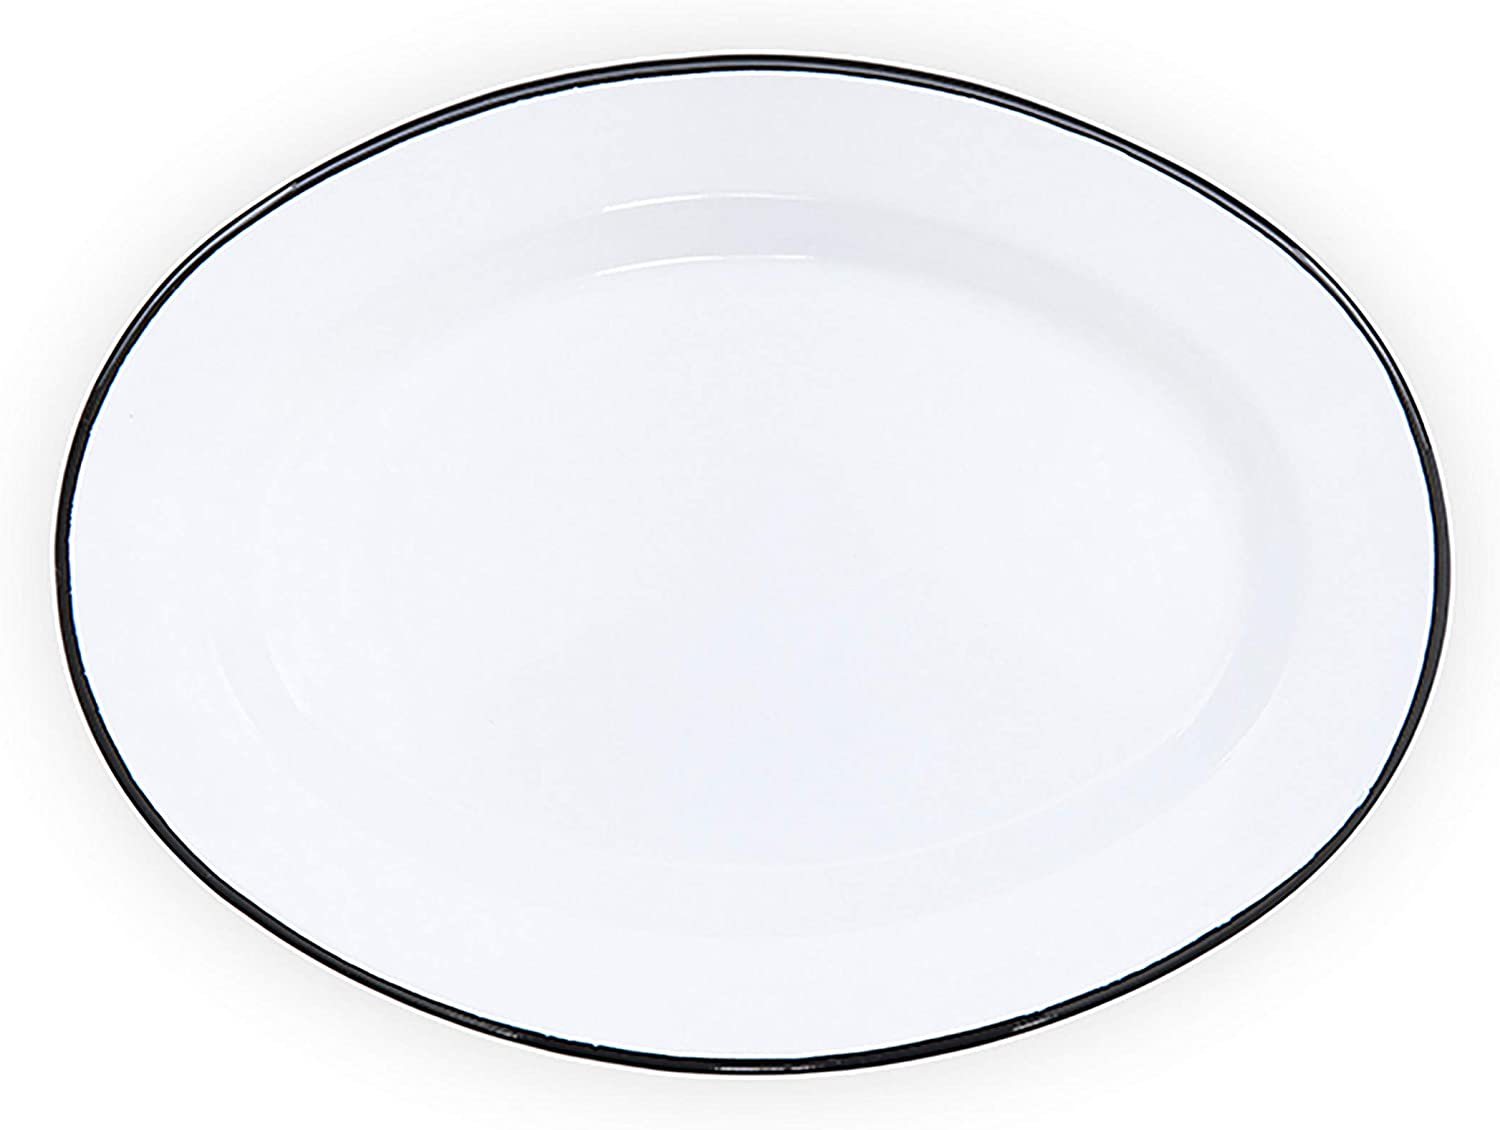 Enamelware Oval Plate, 11.75 inch, Vintage White/Black (Single)